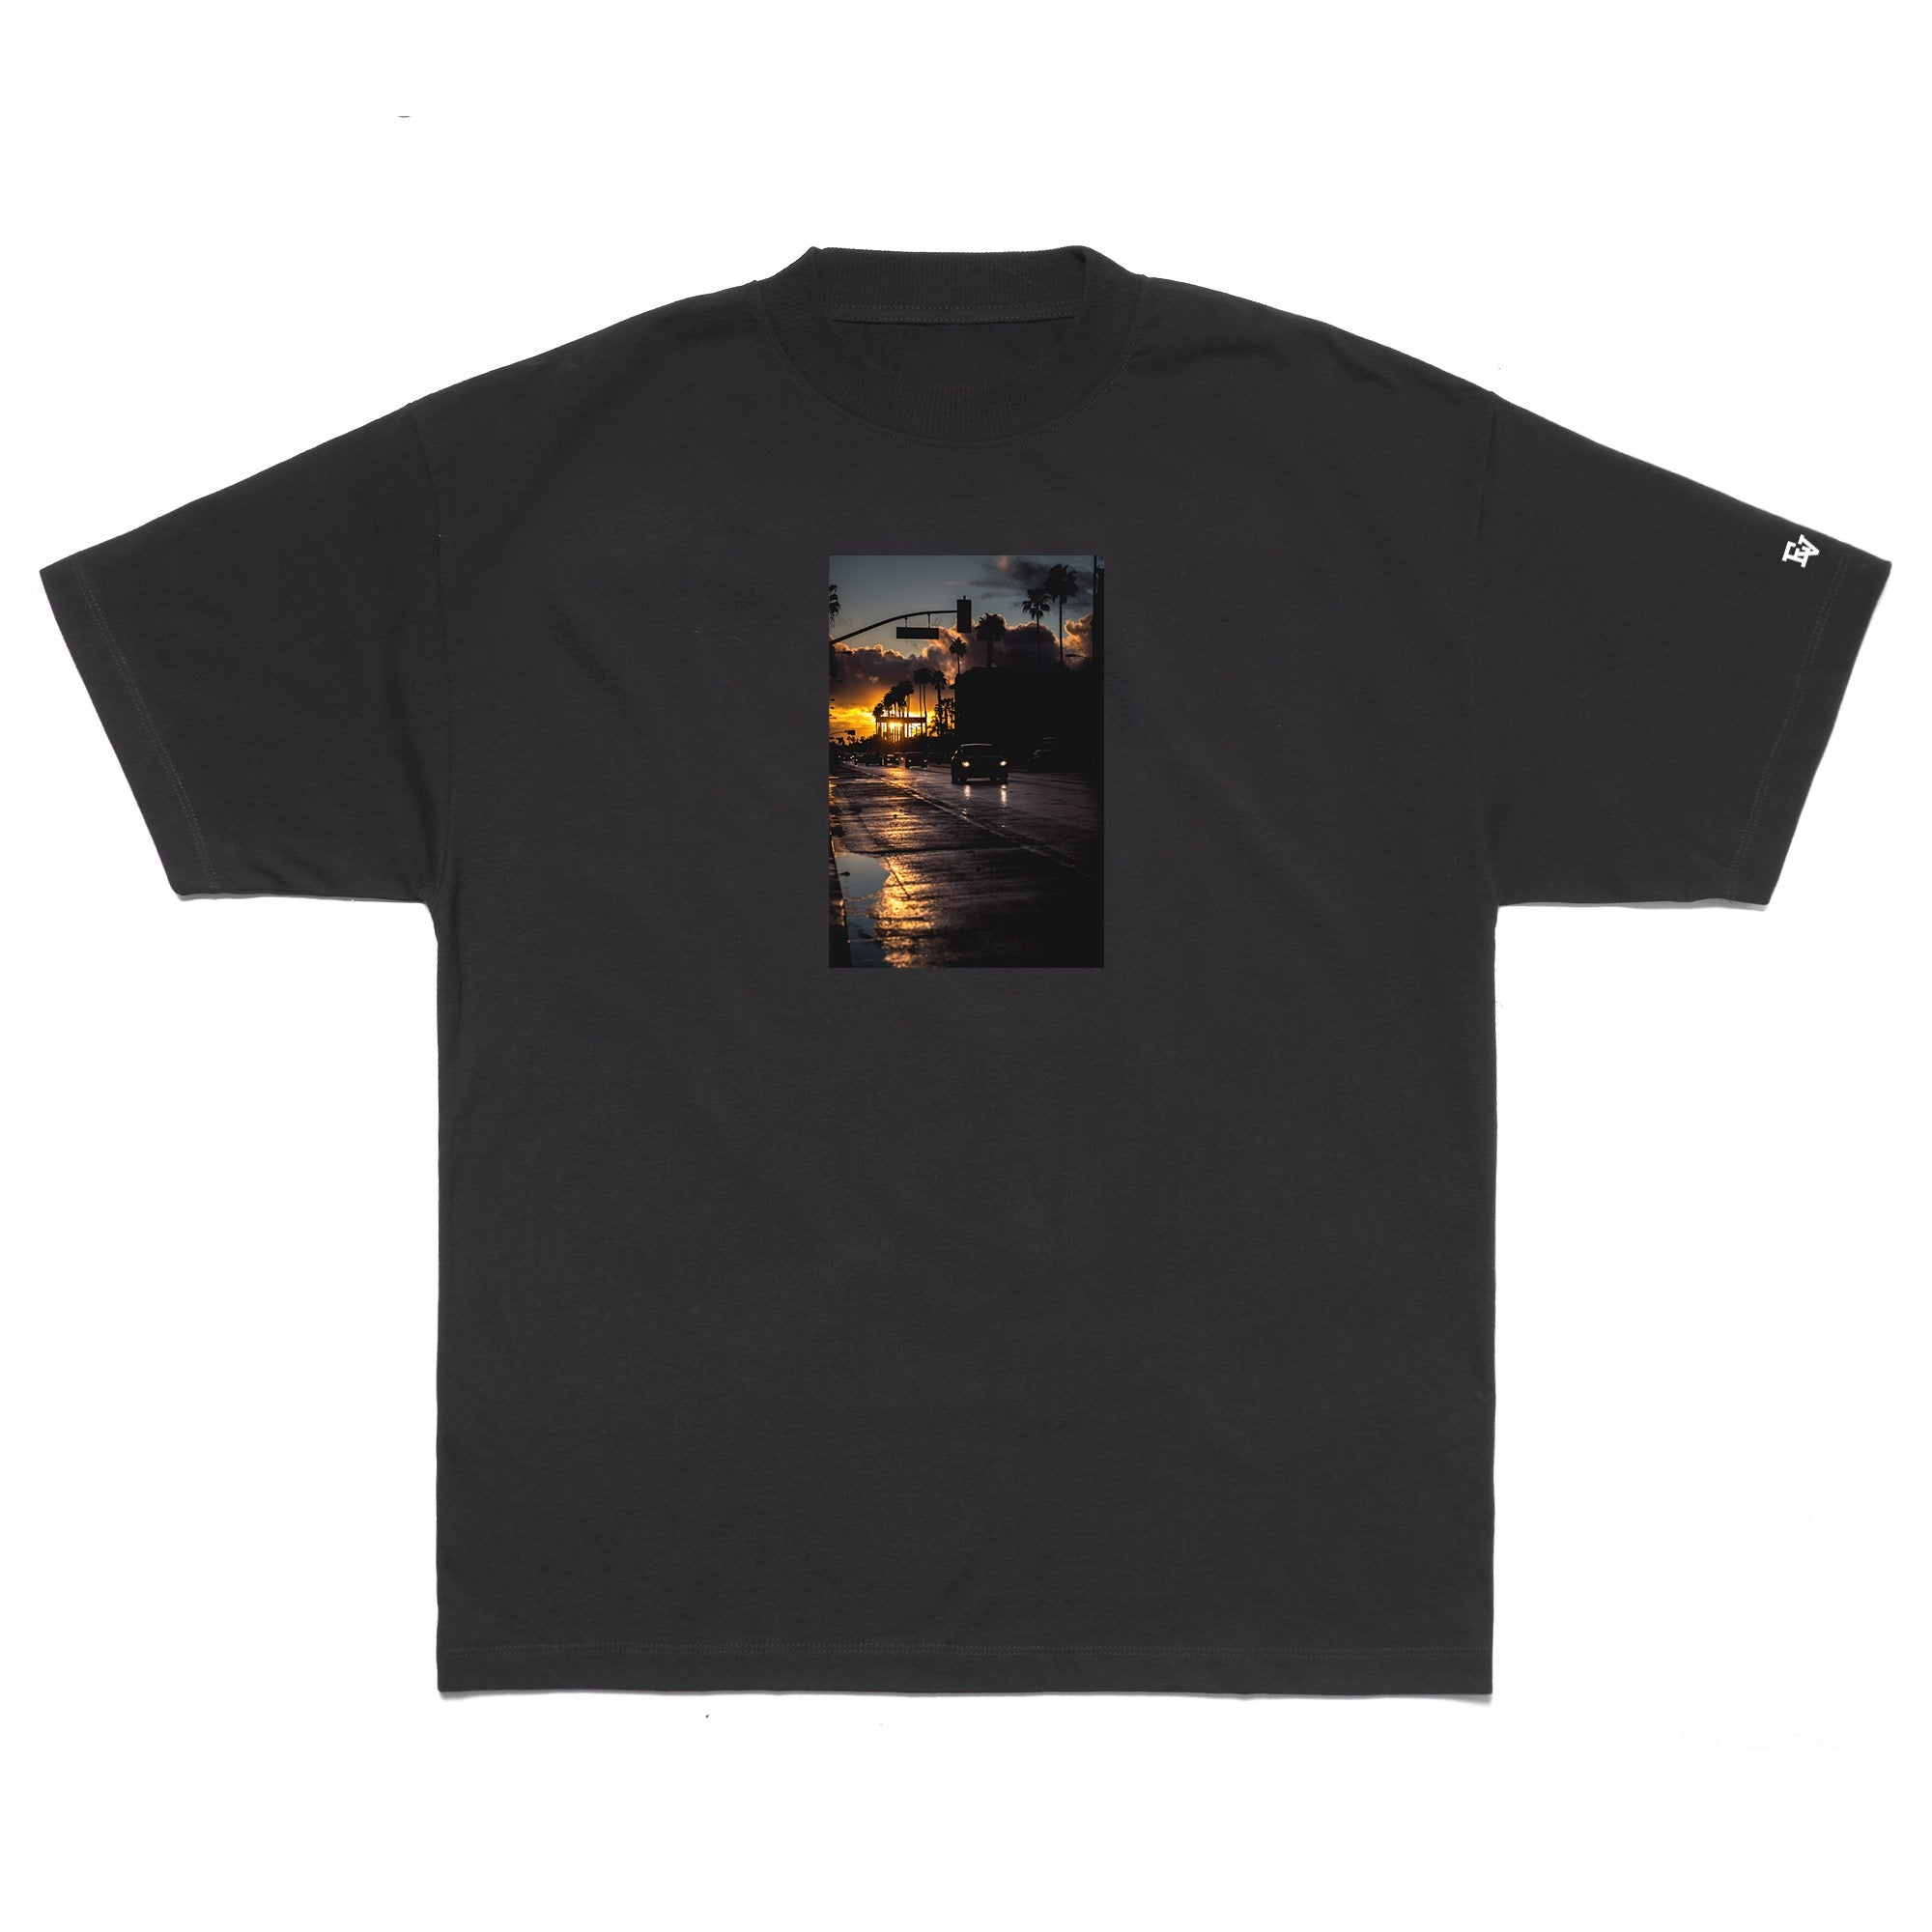 UNDEREXPOSED #1 - LIMITED EDITION T-SHIRT